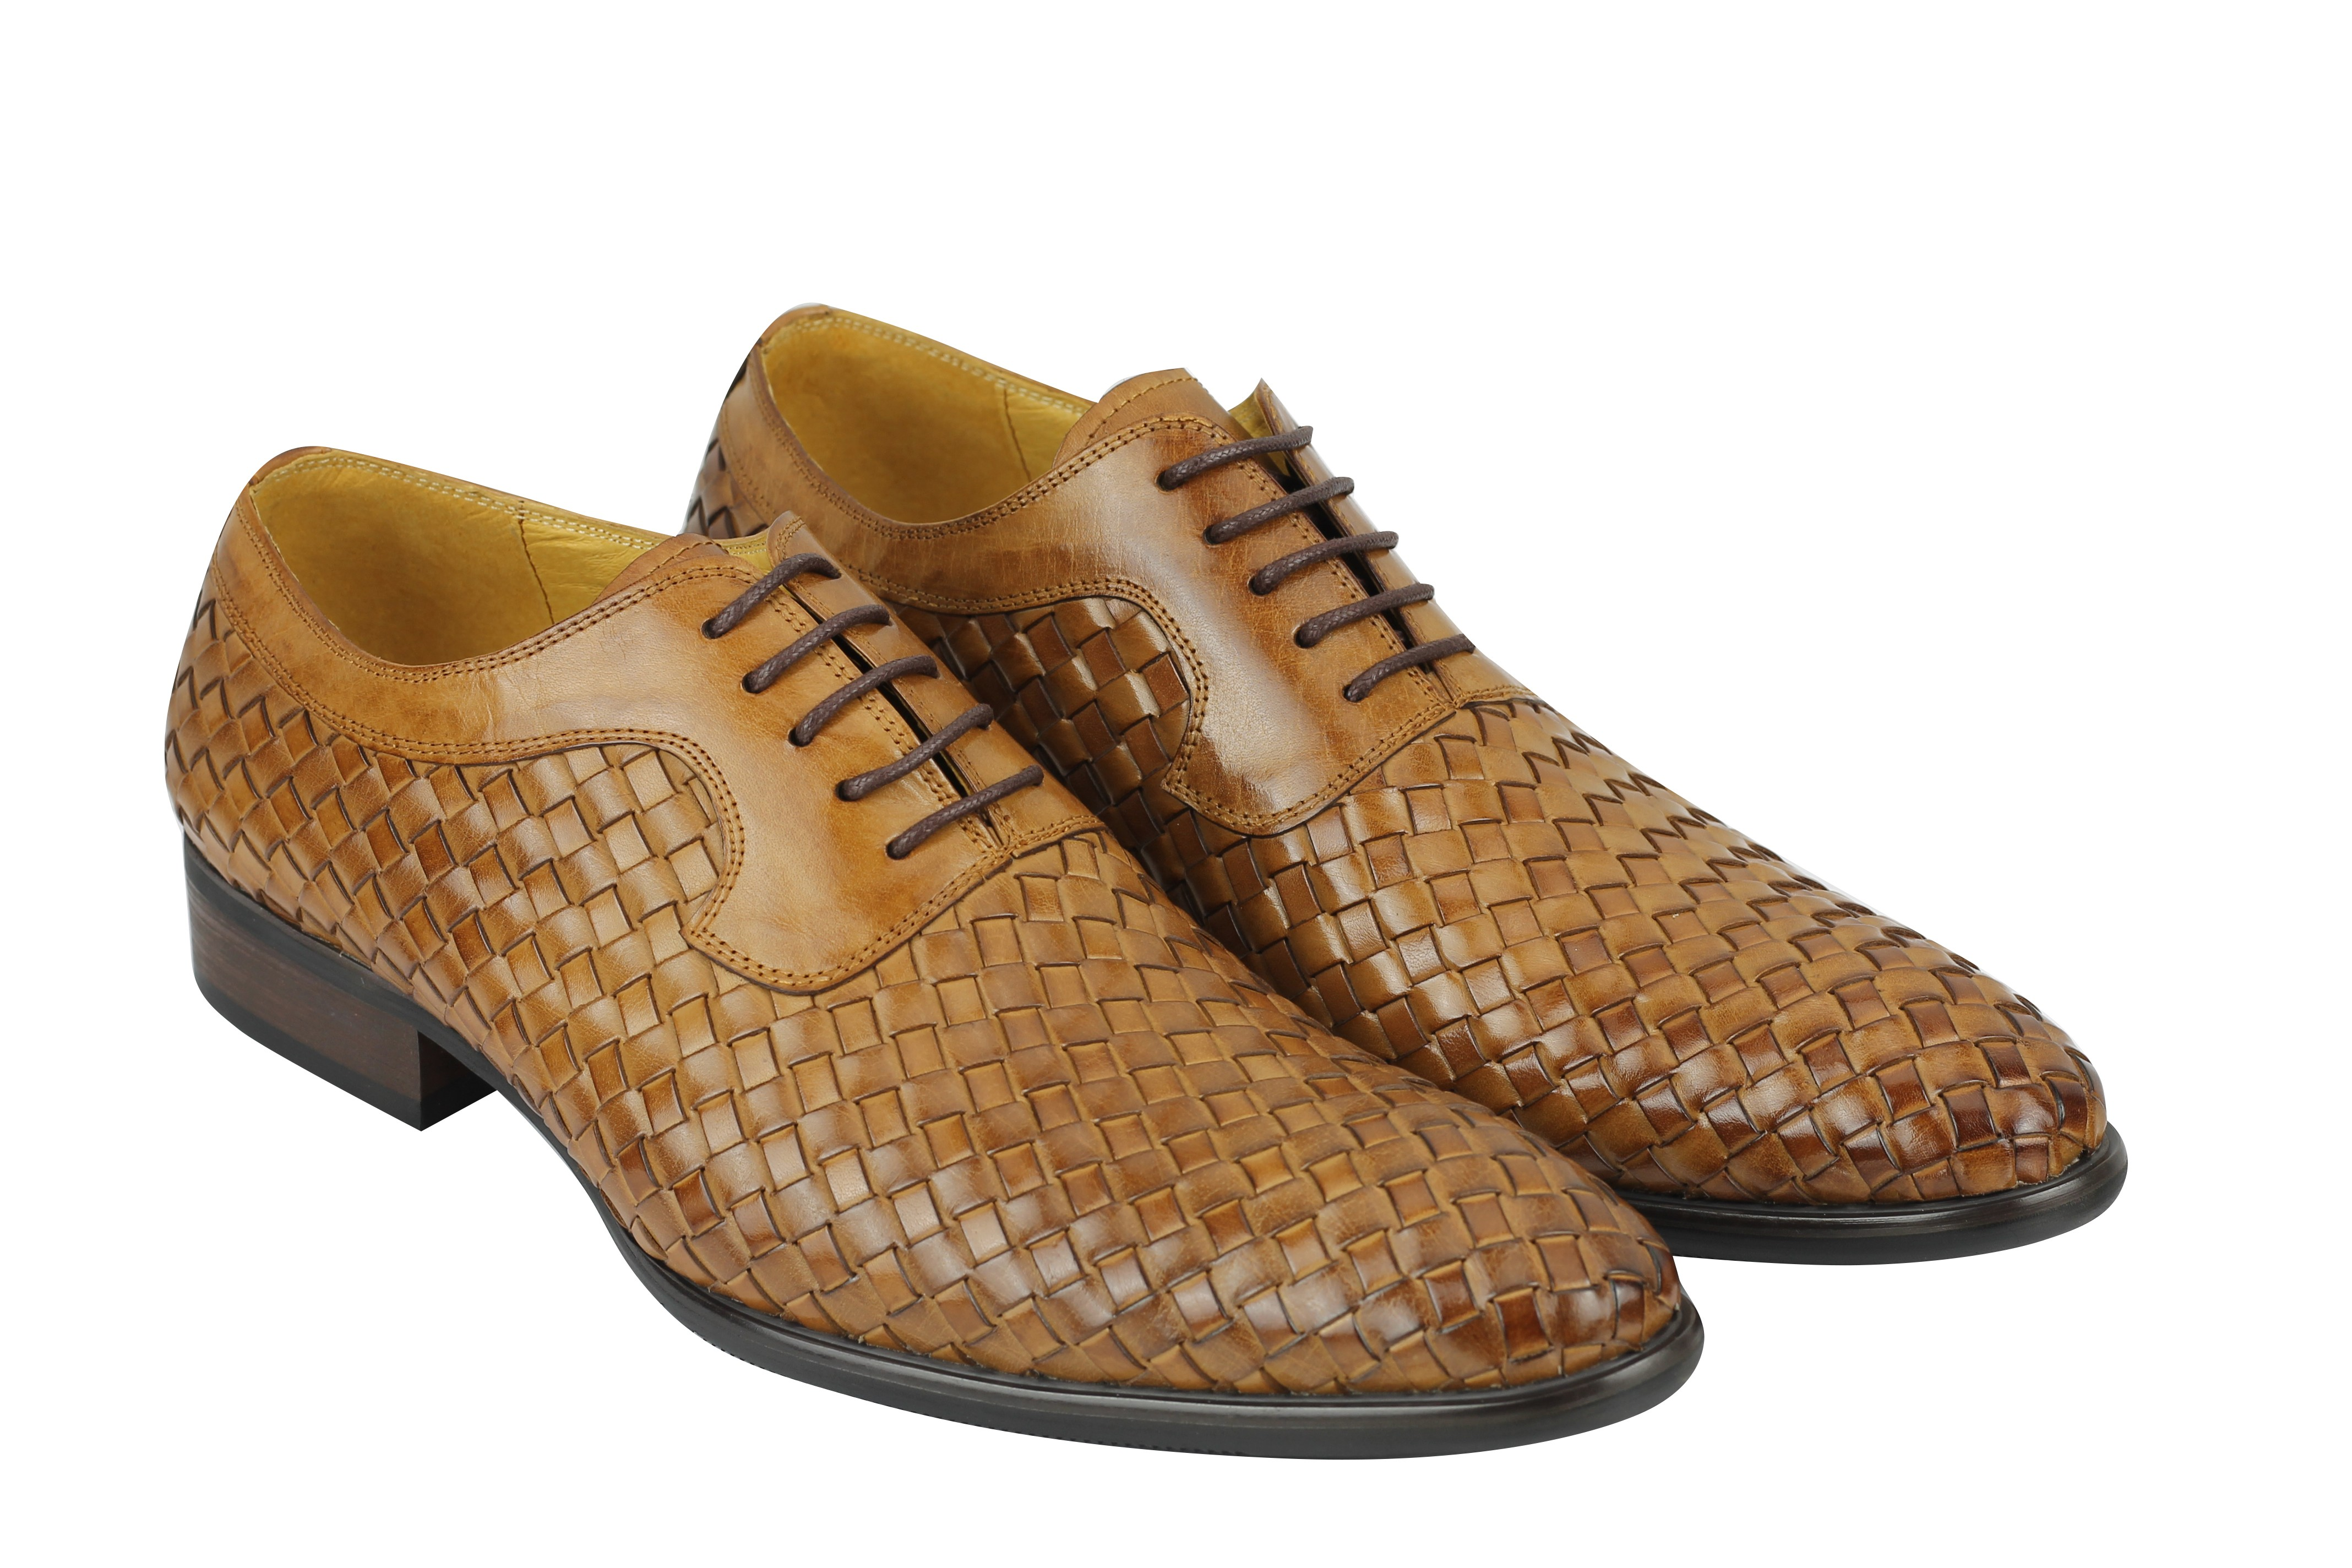 585e08c41b8e Mens Hand Woven Real Leather Vintage Basket Weave Oxford Lace up ...